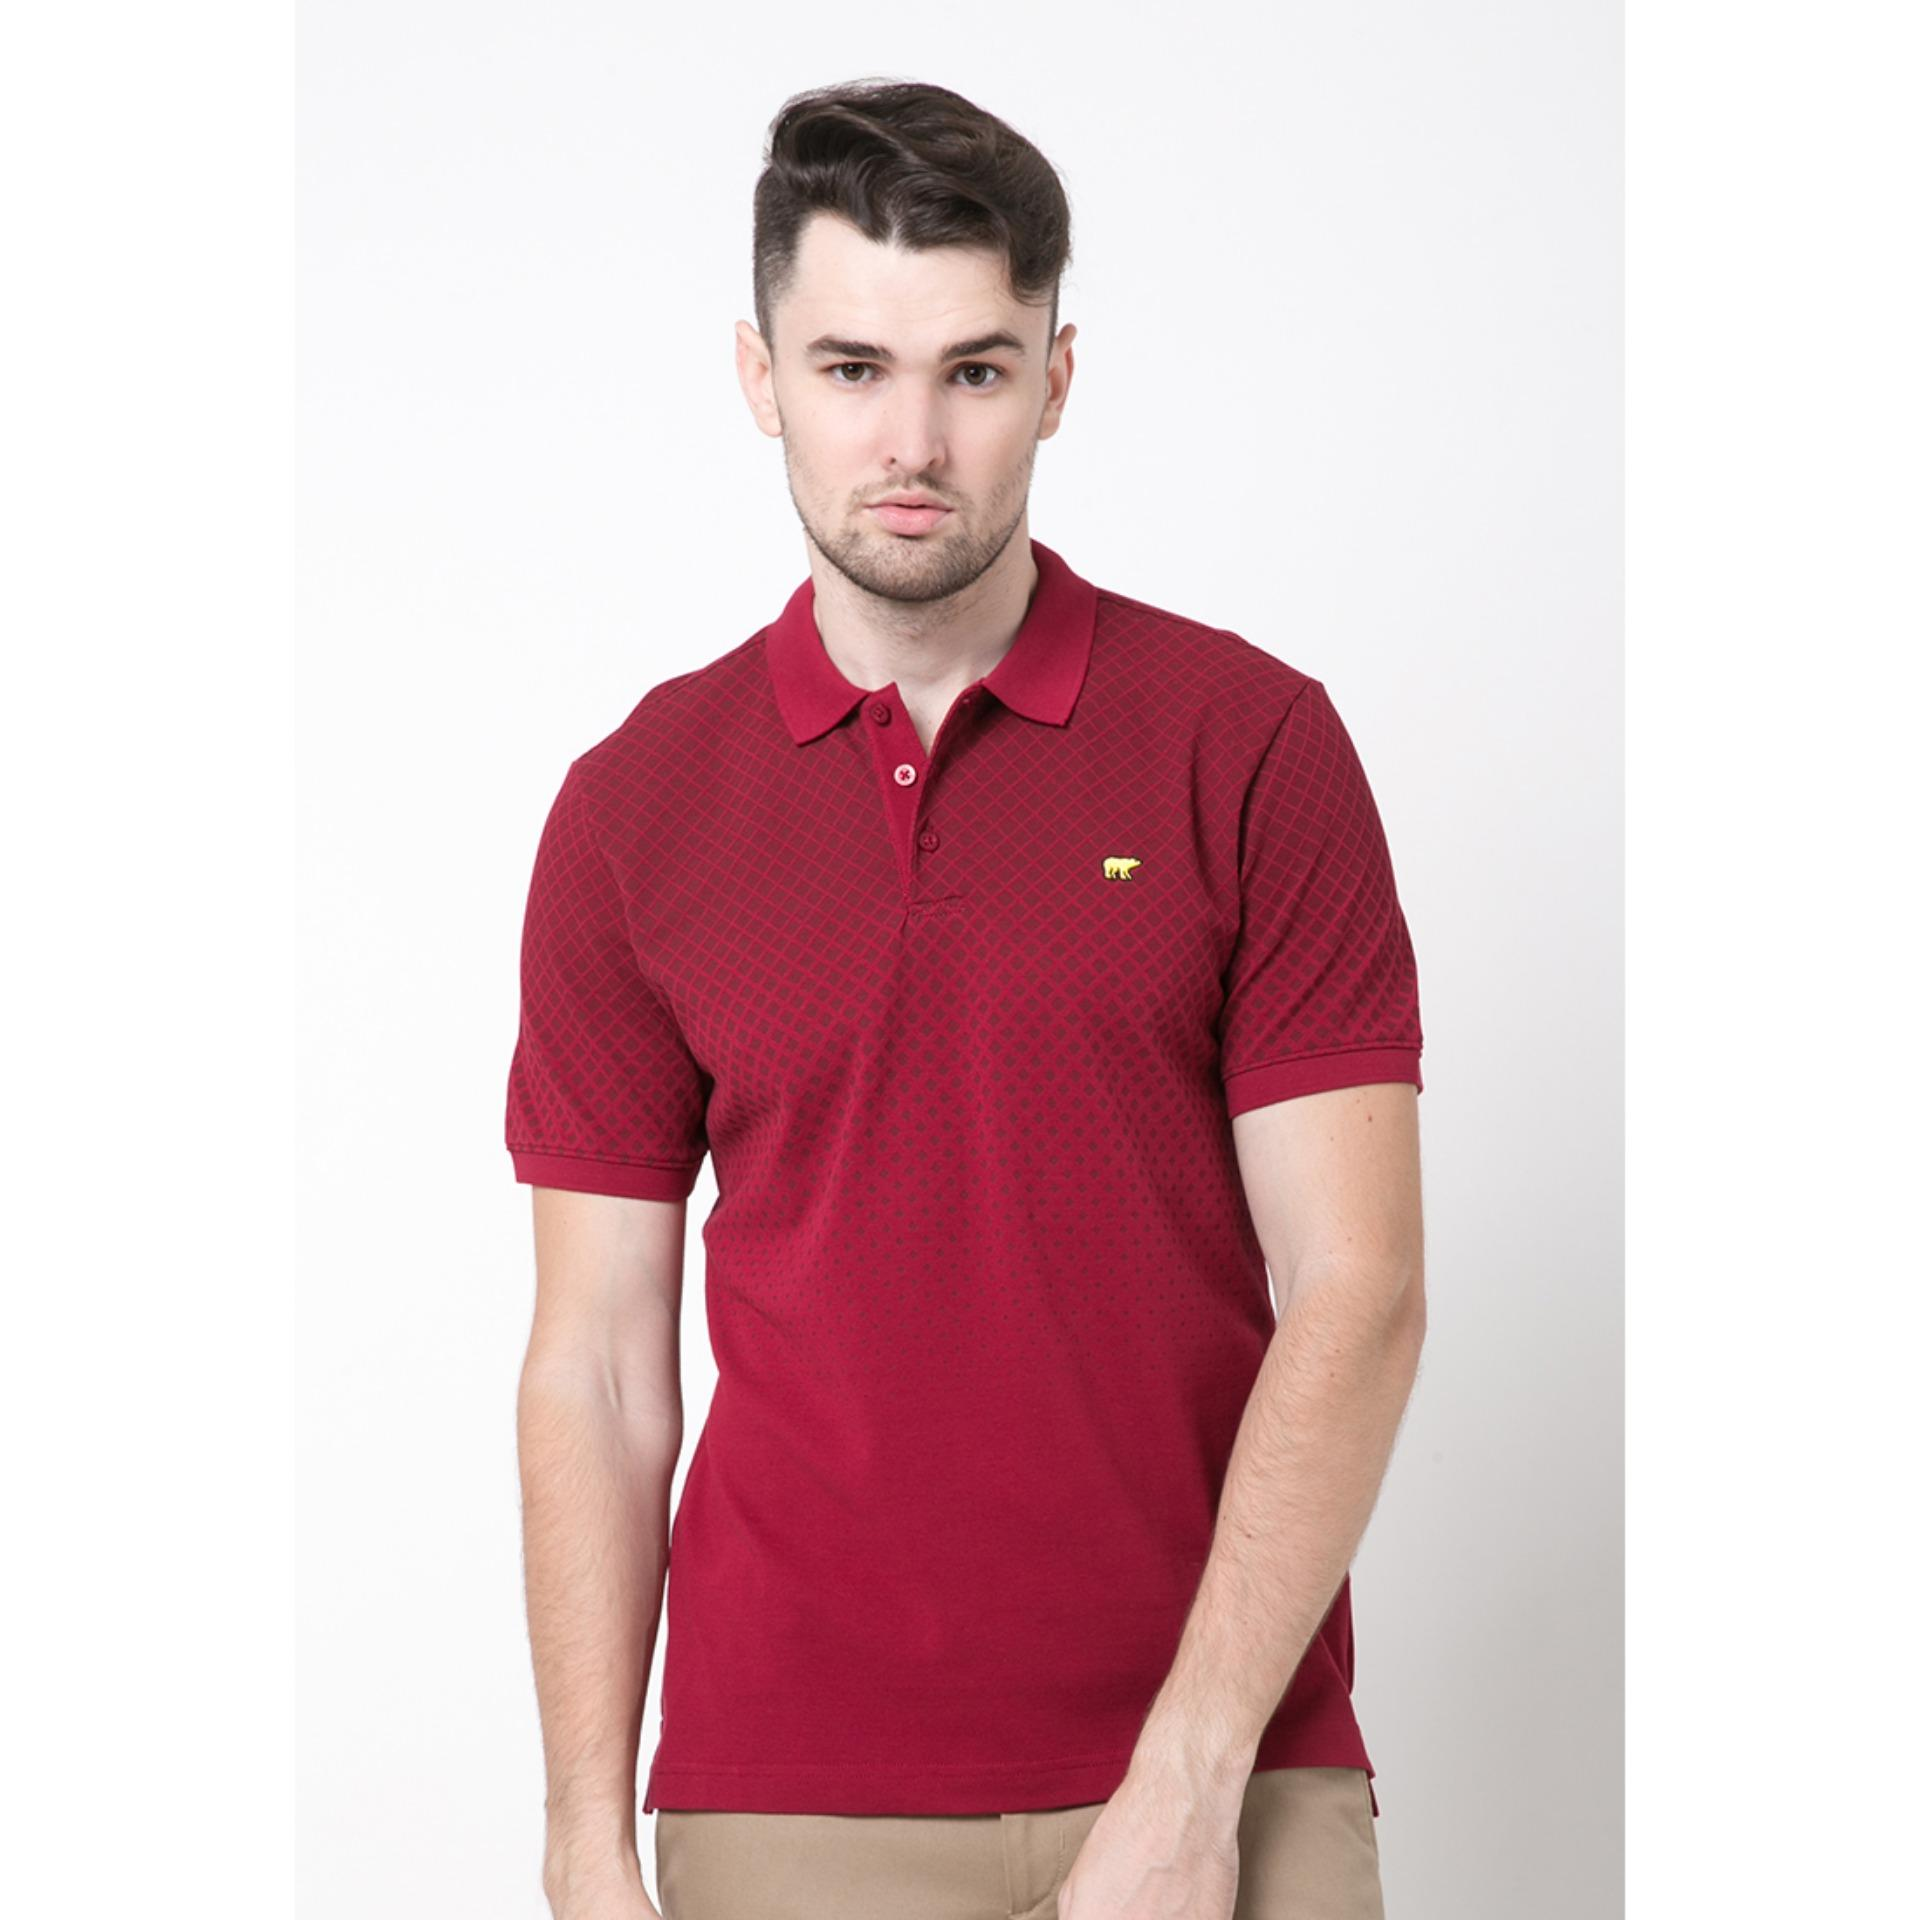 Jack Nicklaus Lomond Burgundy Polo Shirt Asli